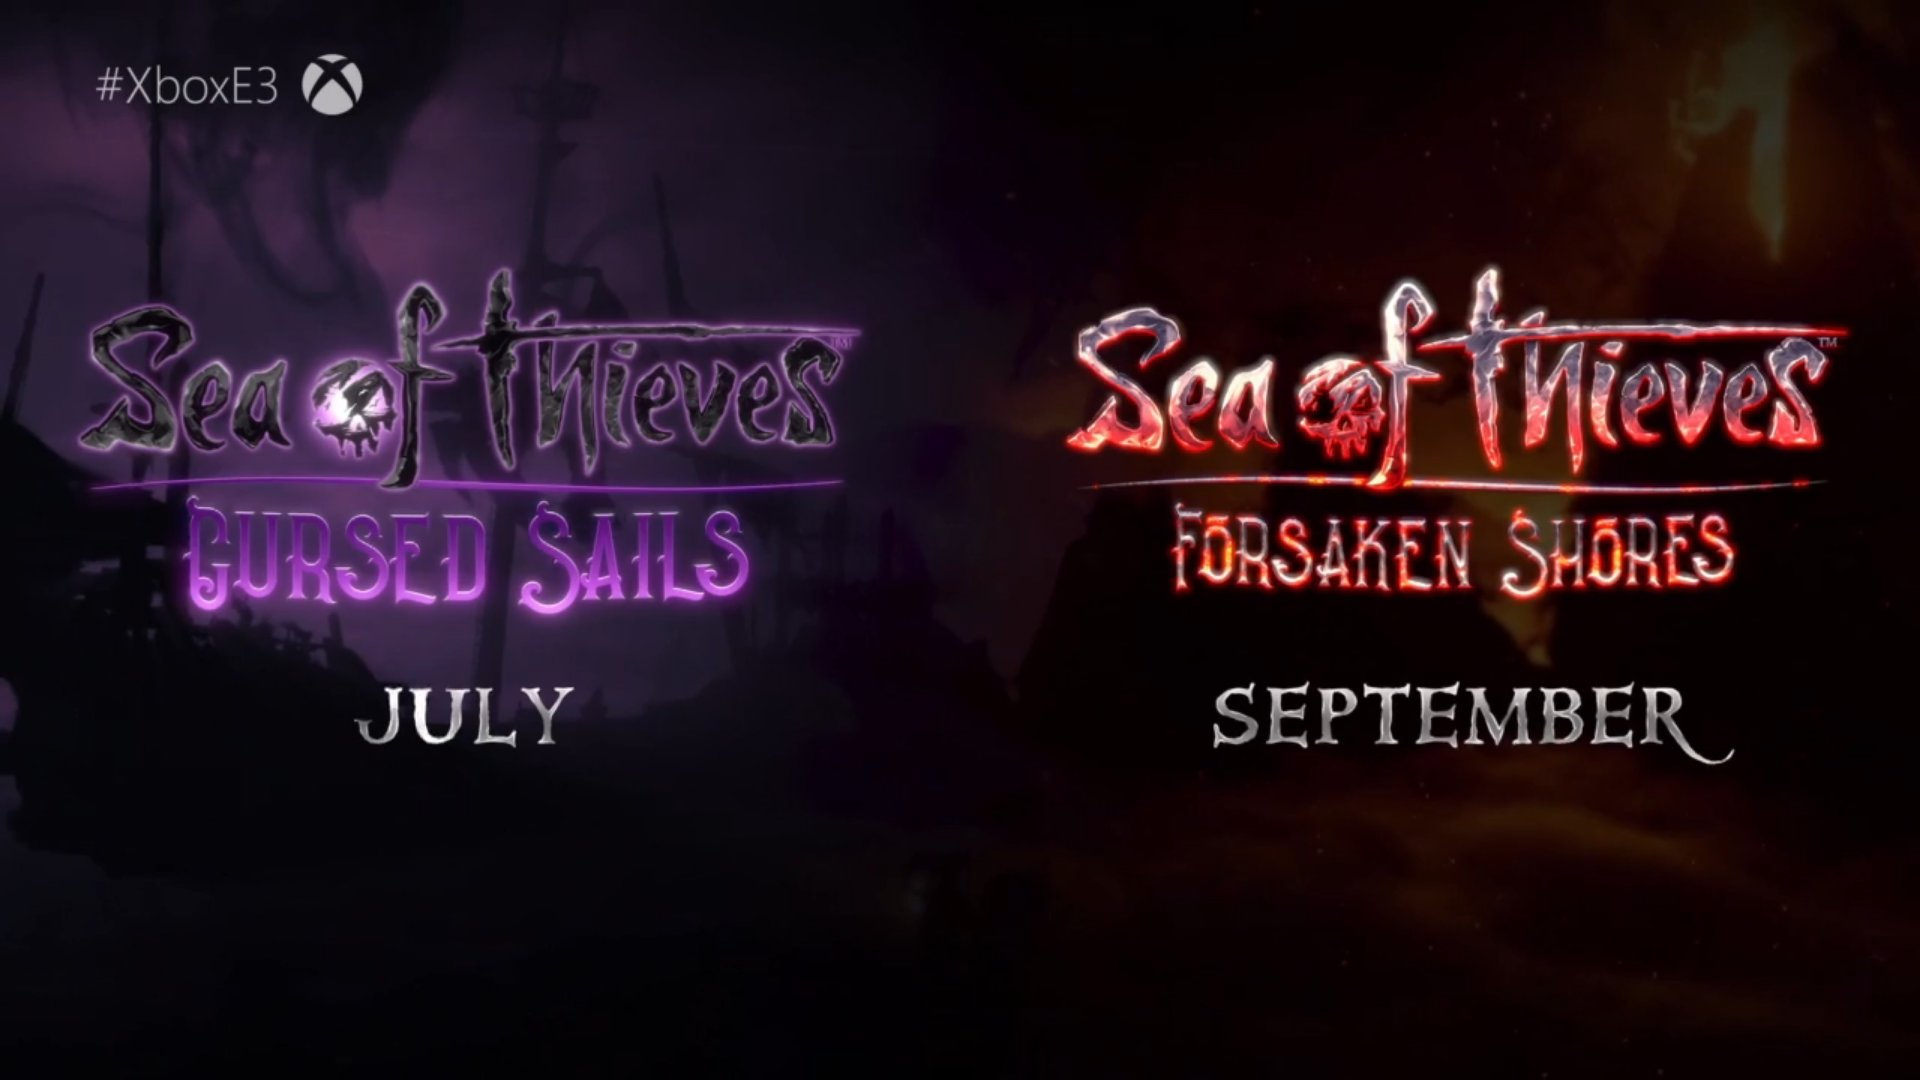 Sea of Thieves Cursed Sails and Forsaken Shores mises à jour à venir en Juillet, Septembre